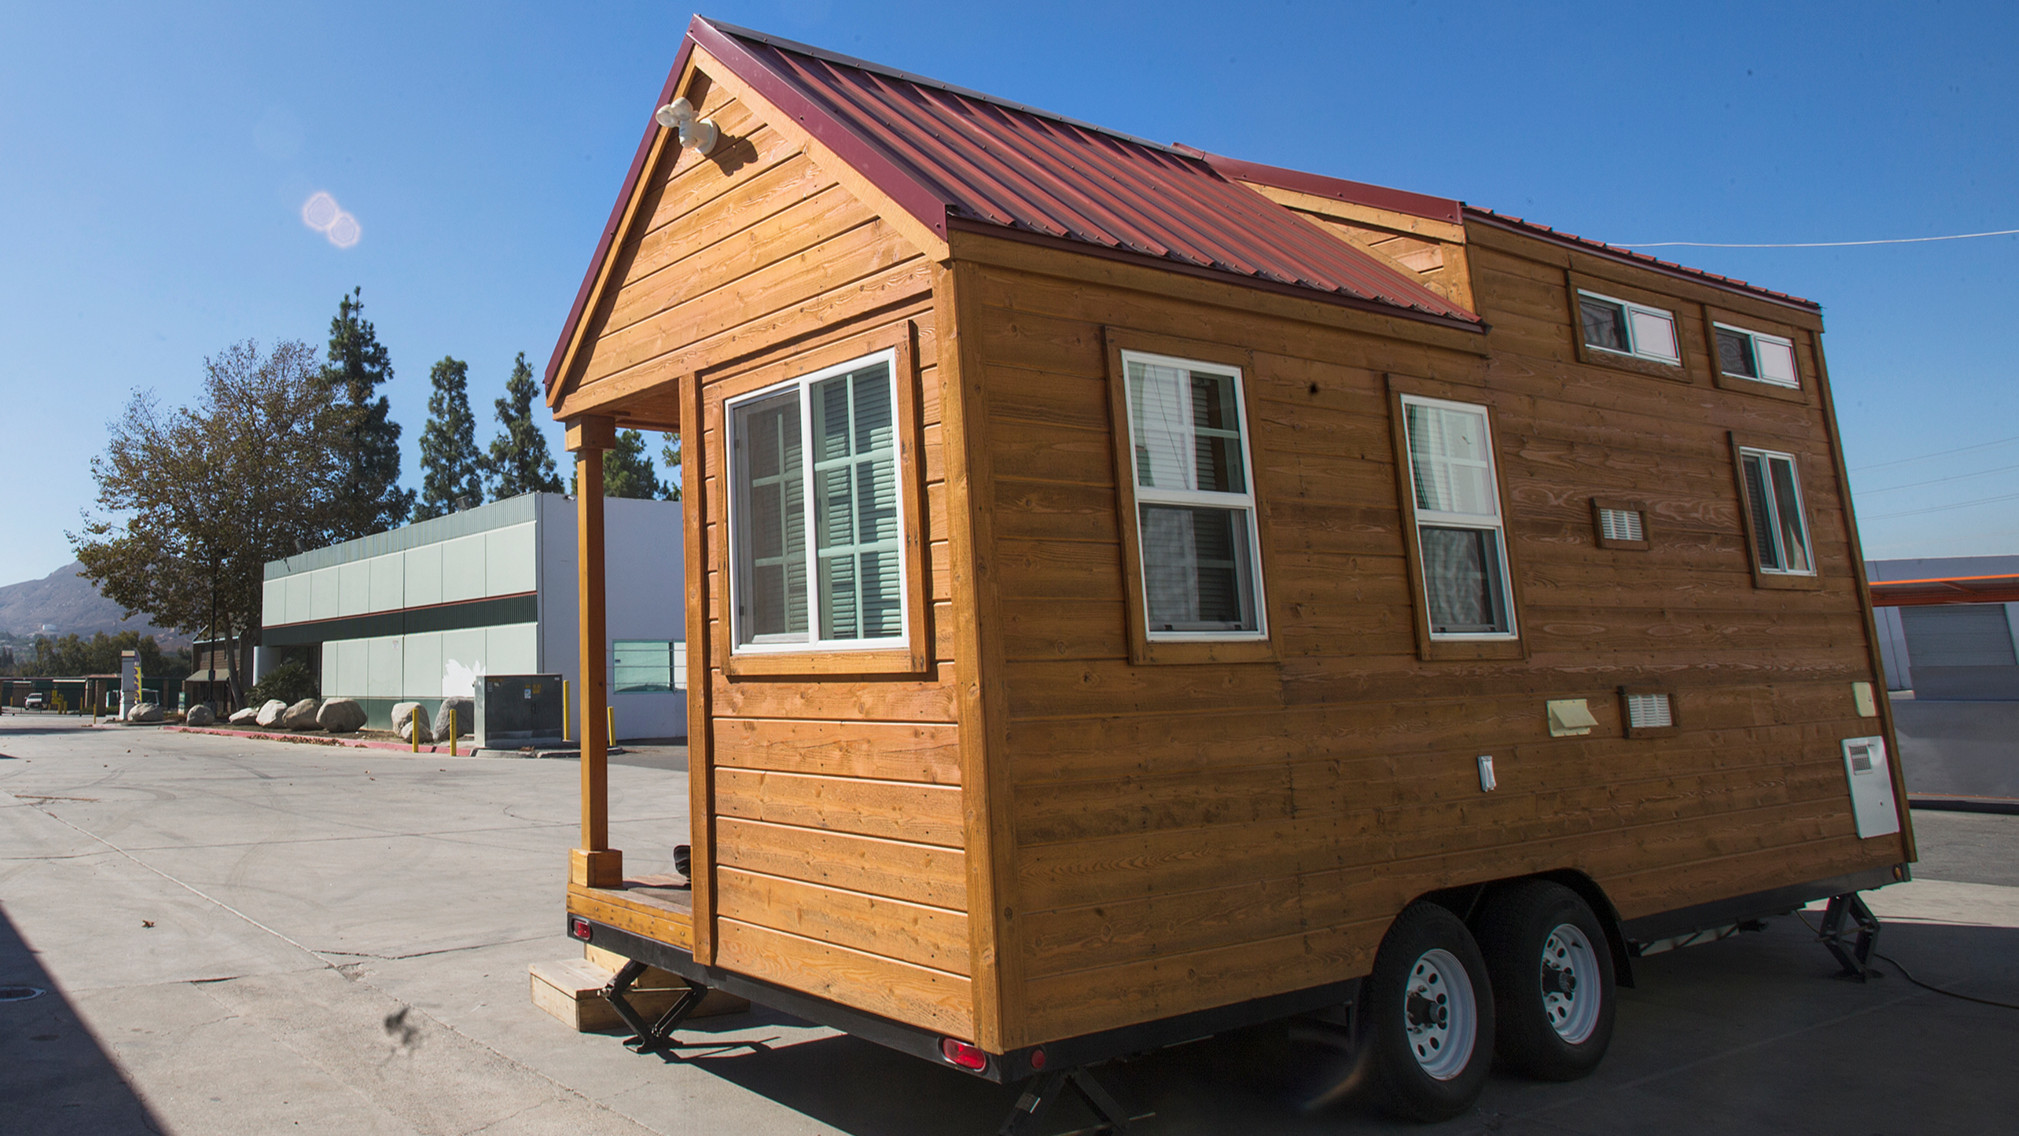 Tiny homes are all the rage But heres why the market is more